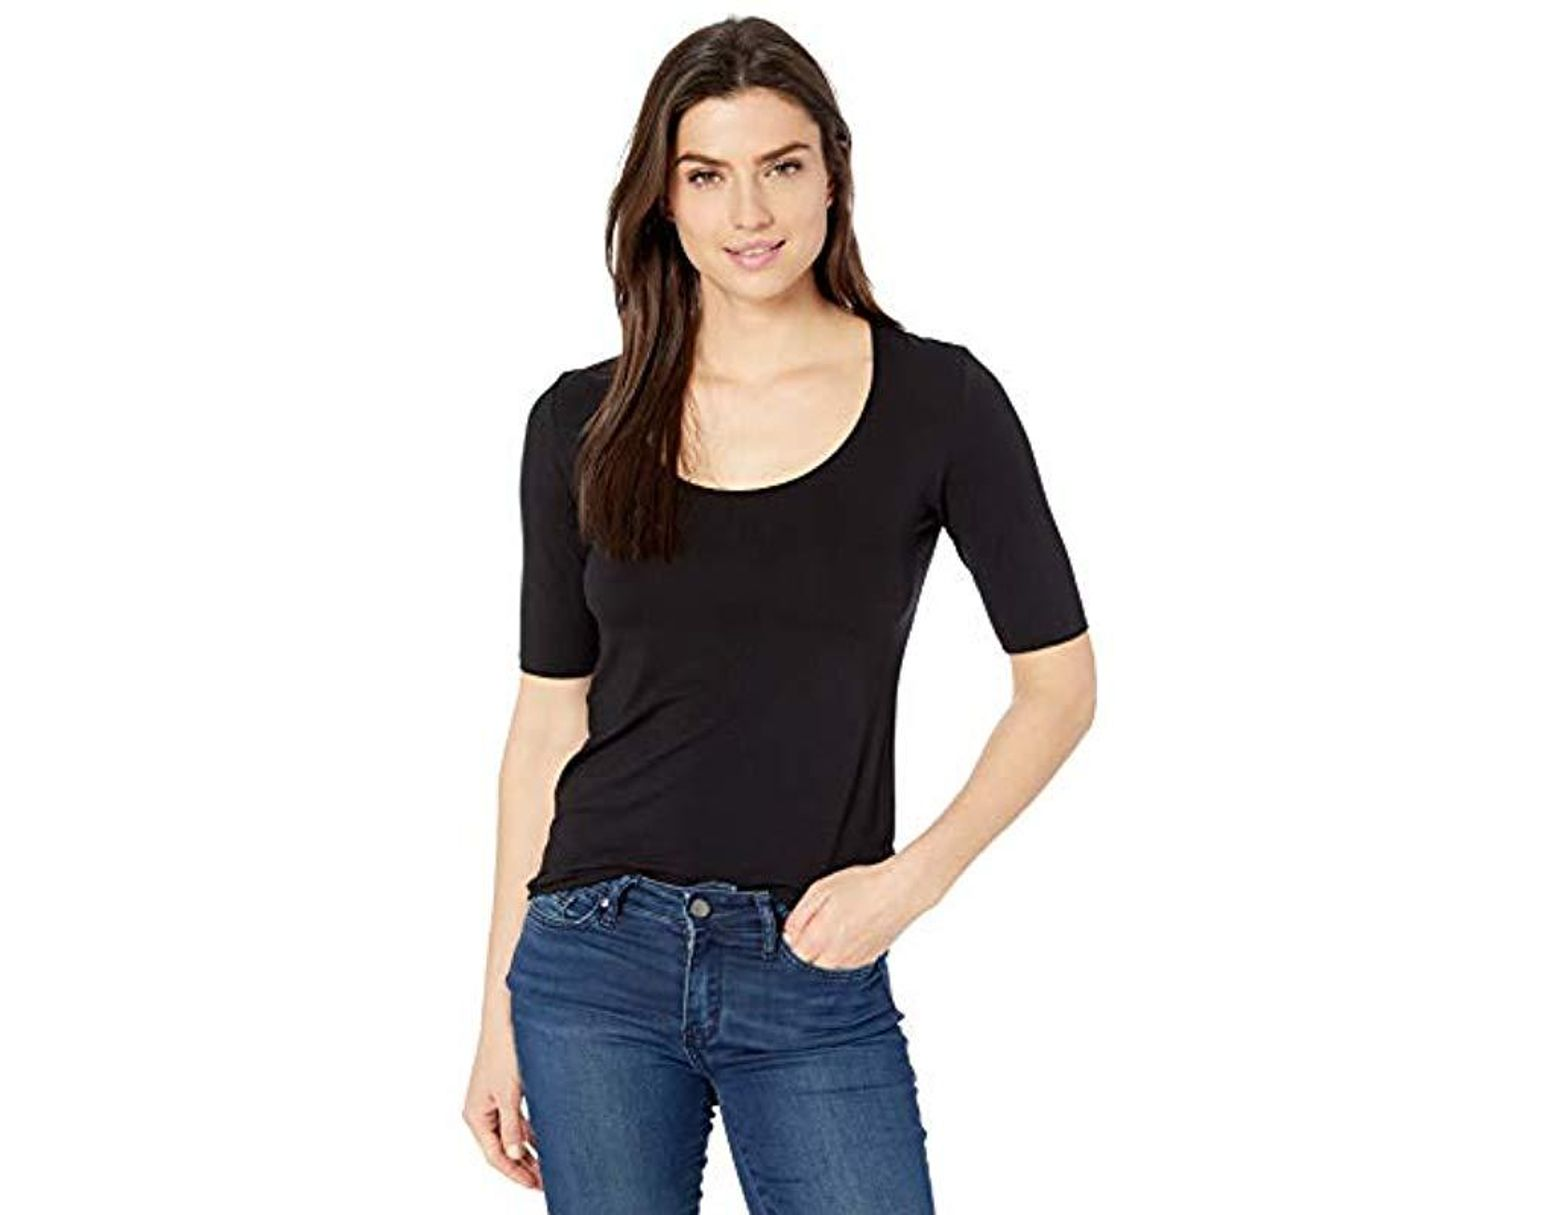 659e9858b Majestic Filatures Elbow Sleeve Marrow-edge Scoop Neck in Black - Lyst